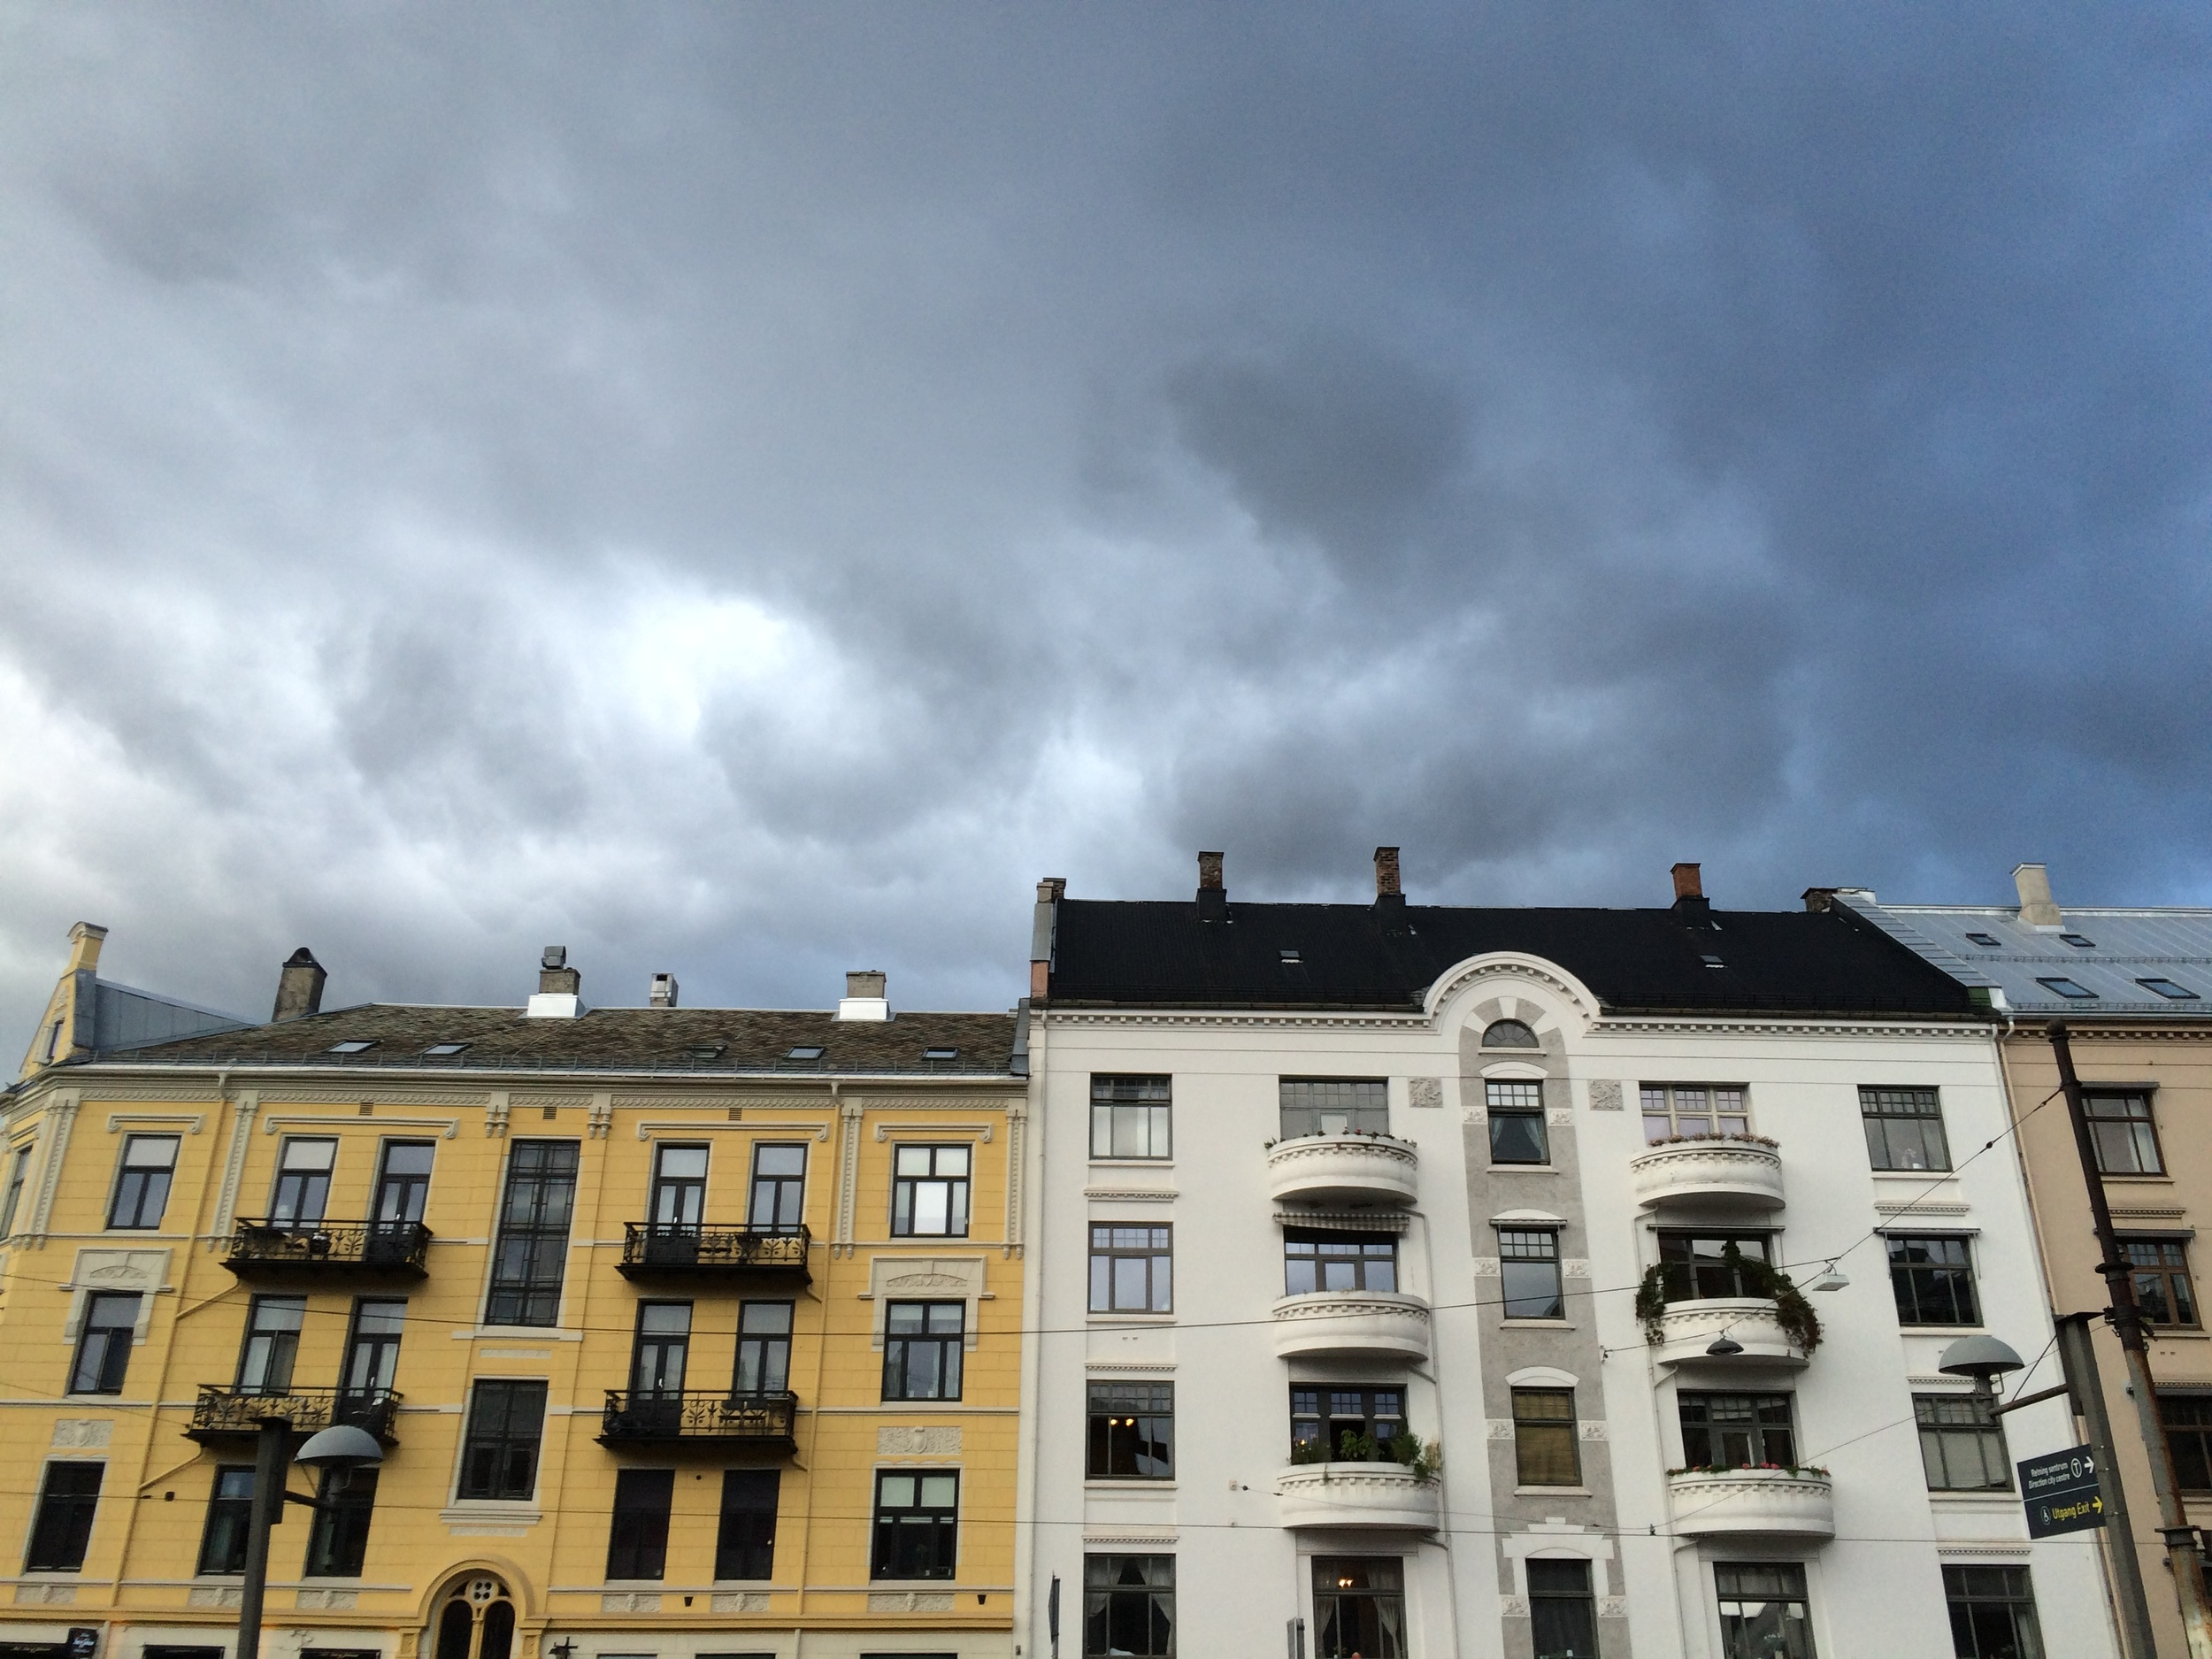 Oslo city architecture and clouds - I was out with bass at this time, and got soaked trying to get home